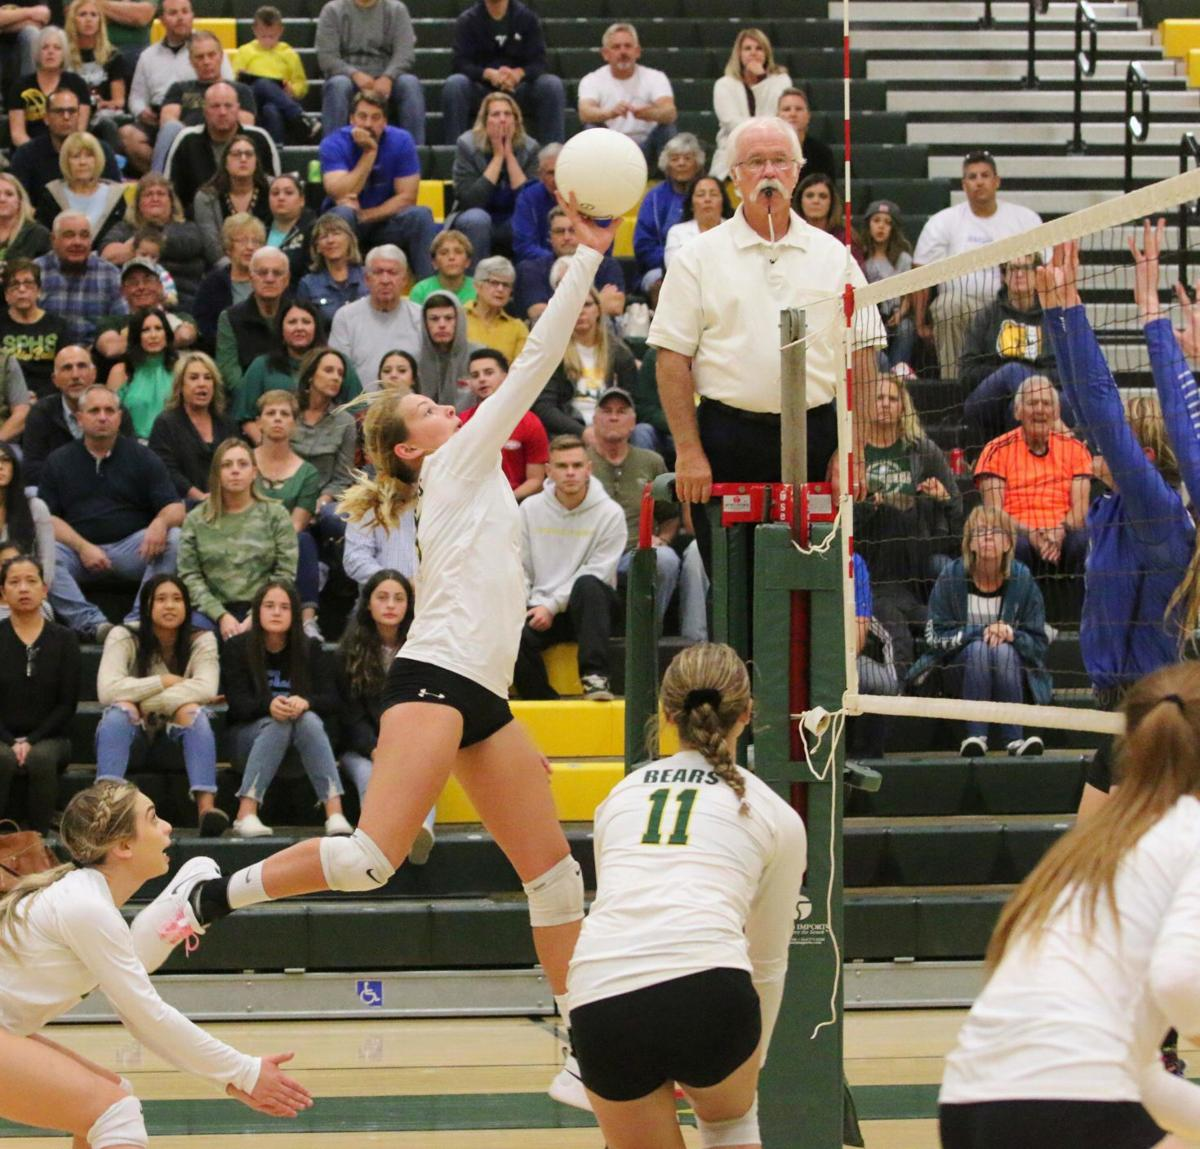 Sierra Pacific advances to semifinals in 3-0 rout of California City